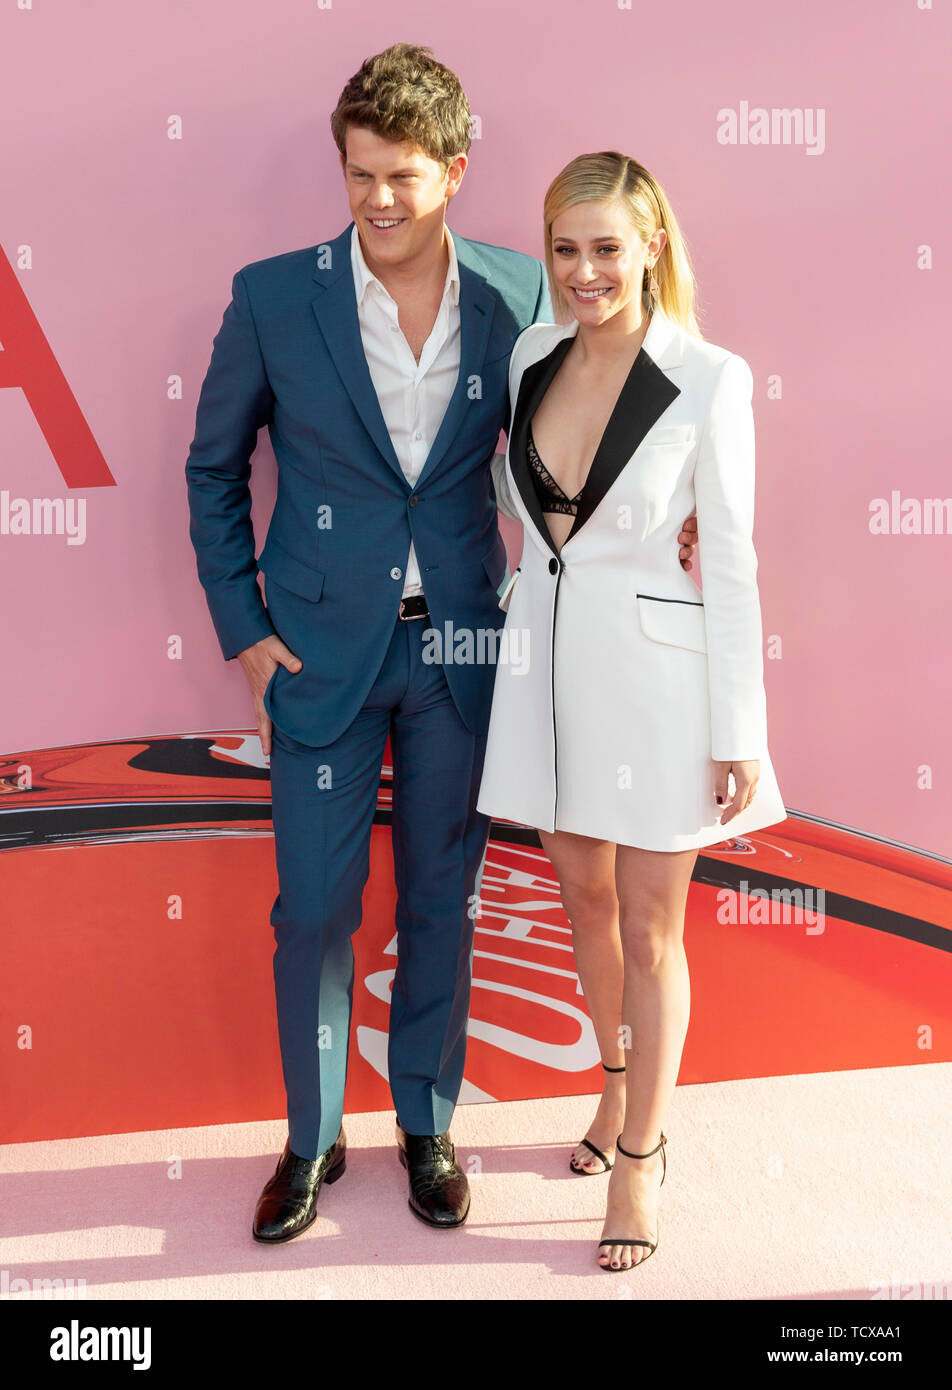 New York, NY - June 03, 2019: Wes Gordon and Lili Reinhart attend 2019 CFDA Fashion Awards at Brooklyn Museum - Stock Image